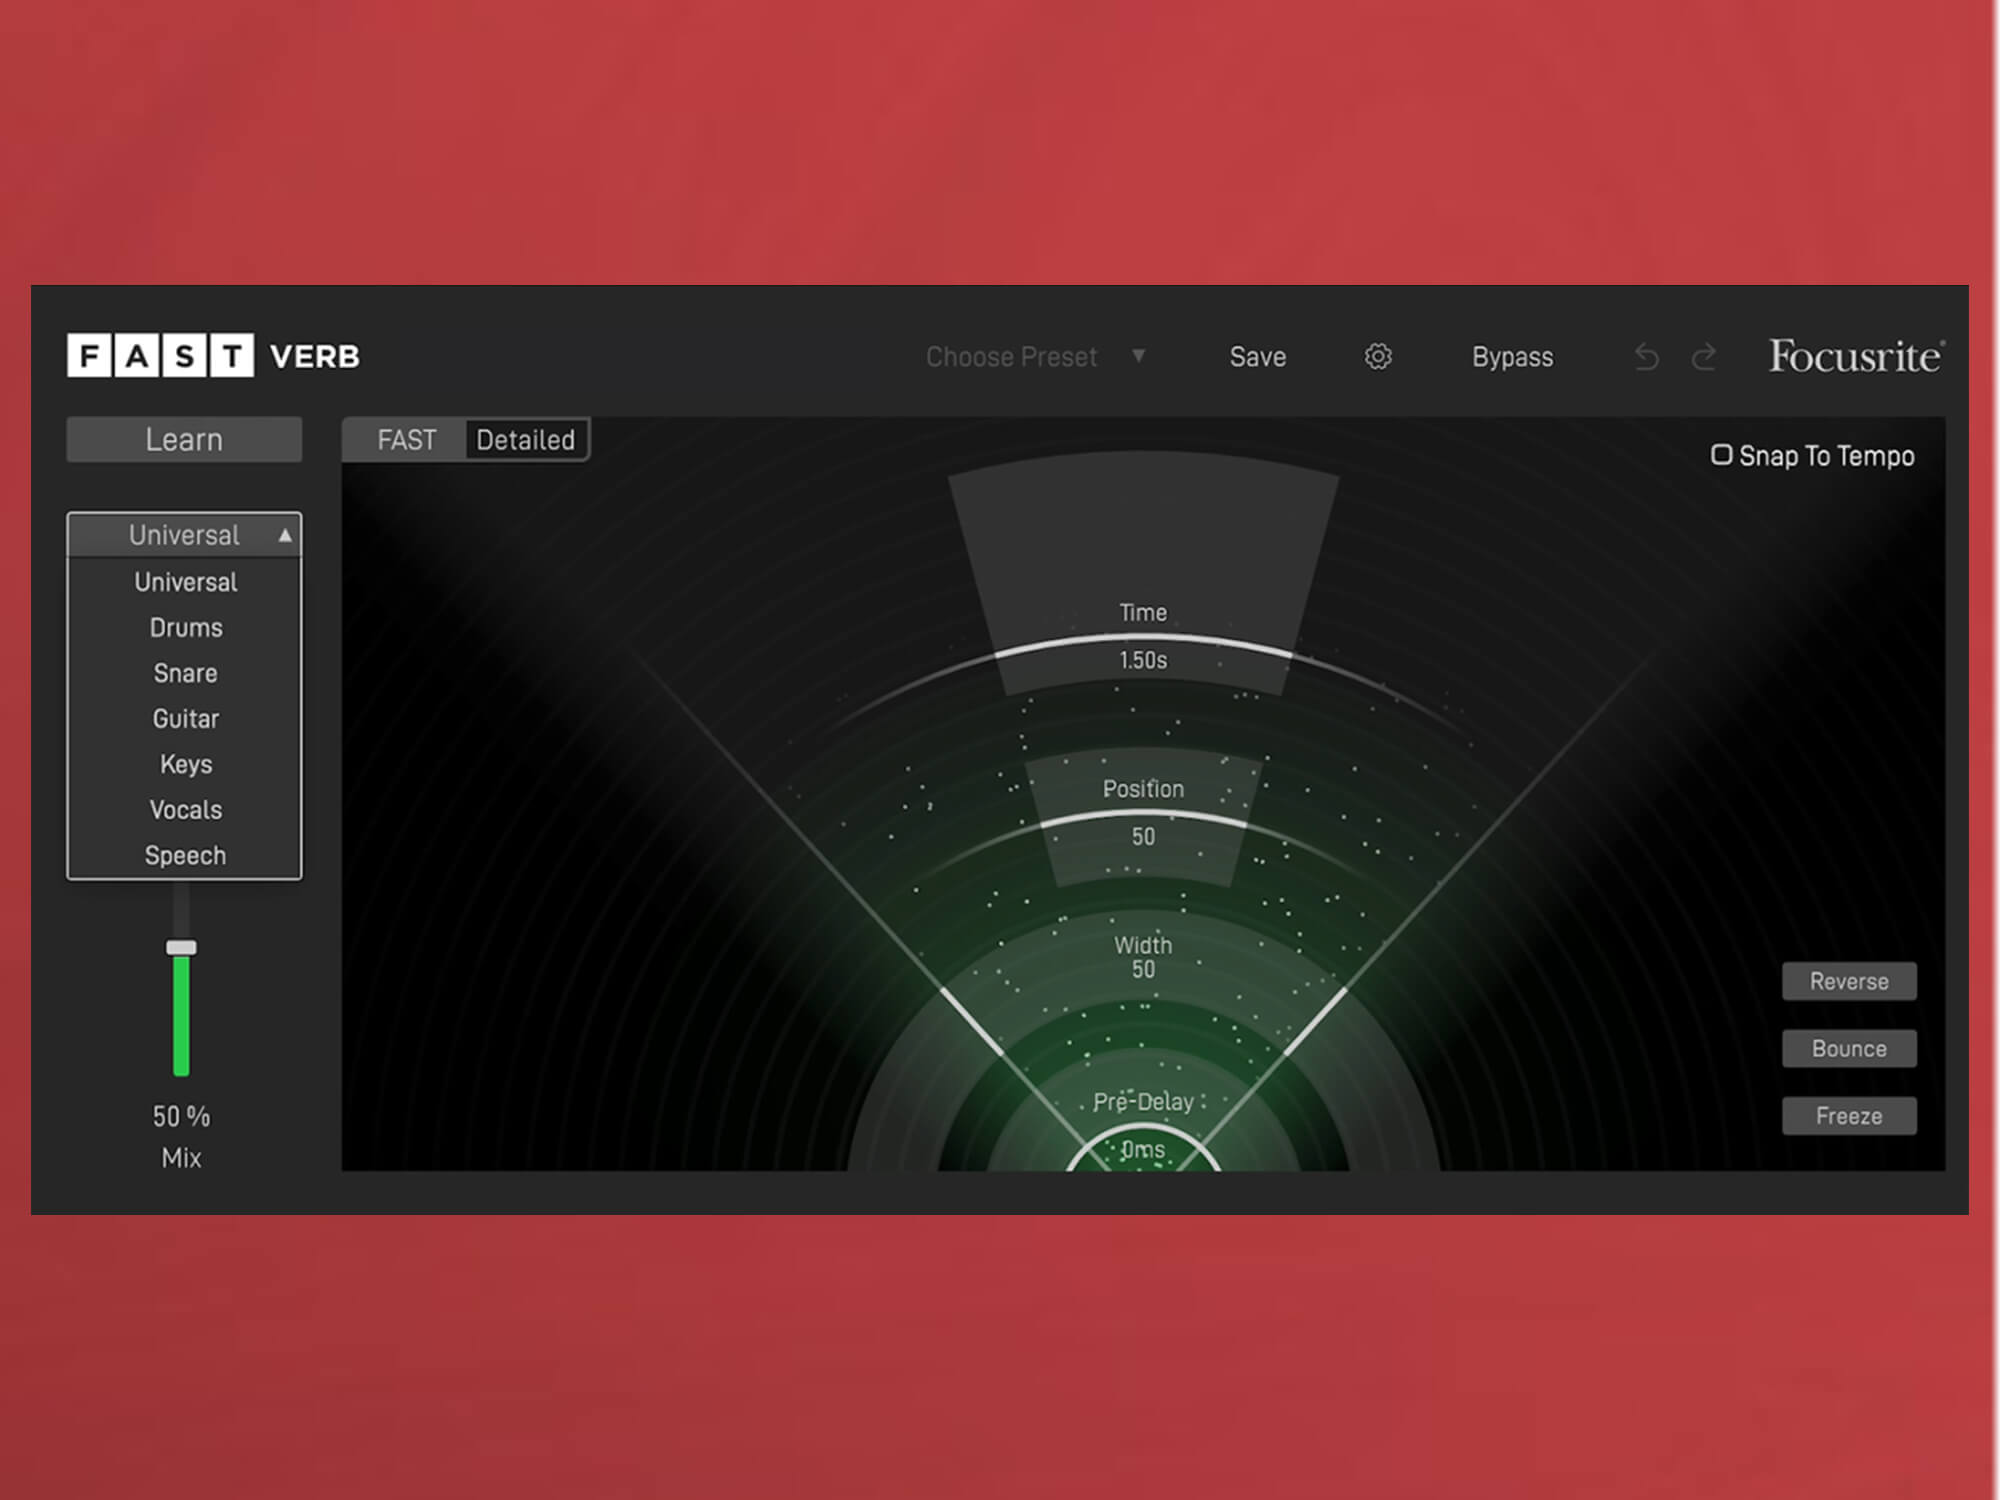 Focusrite's AI-powered FAST Verb analyses your audio to generate the ideal reverb